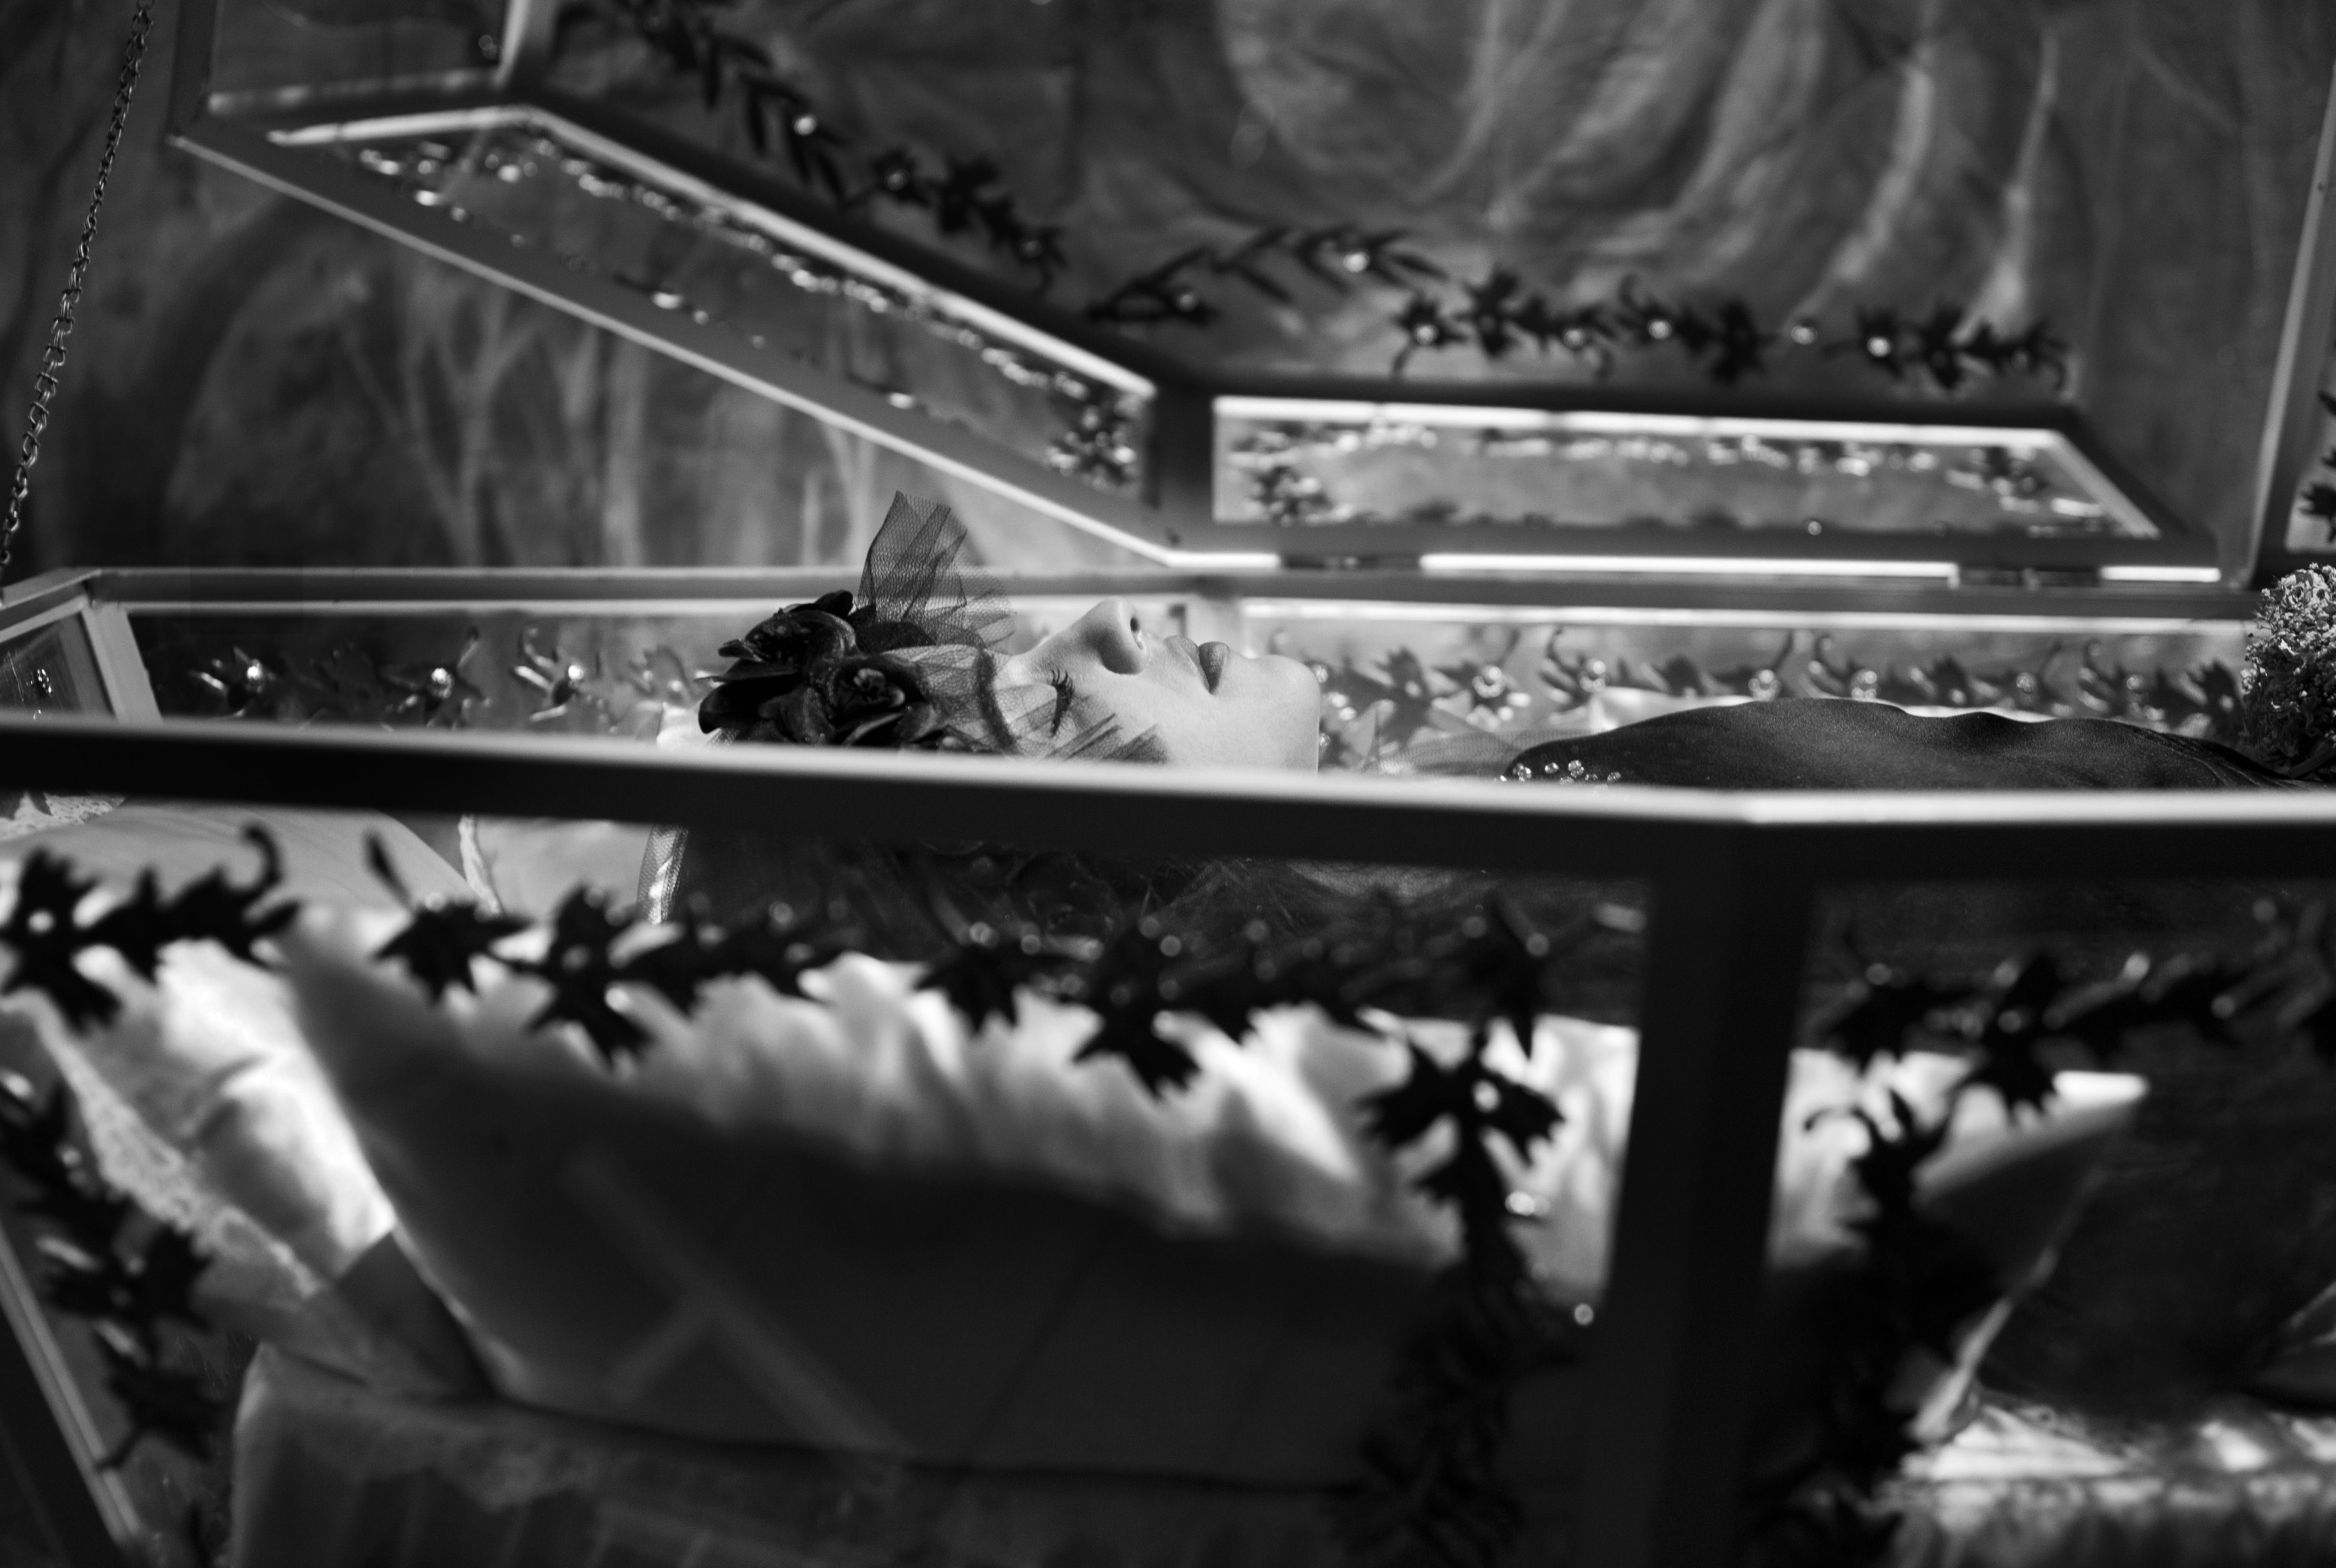 Blancanieves-wallpaper-pic-20